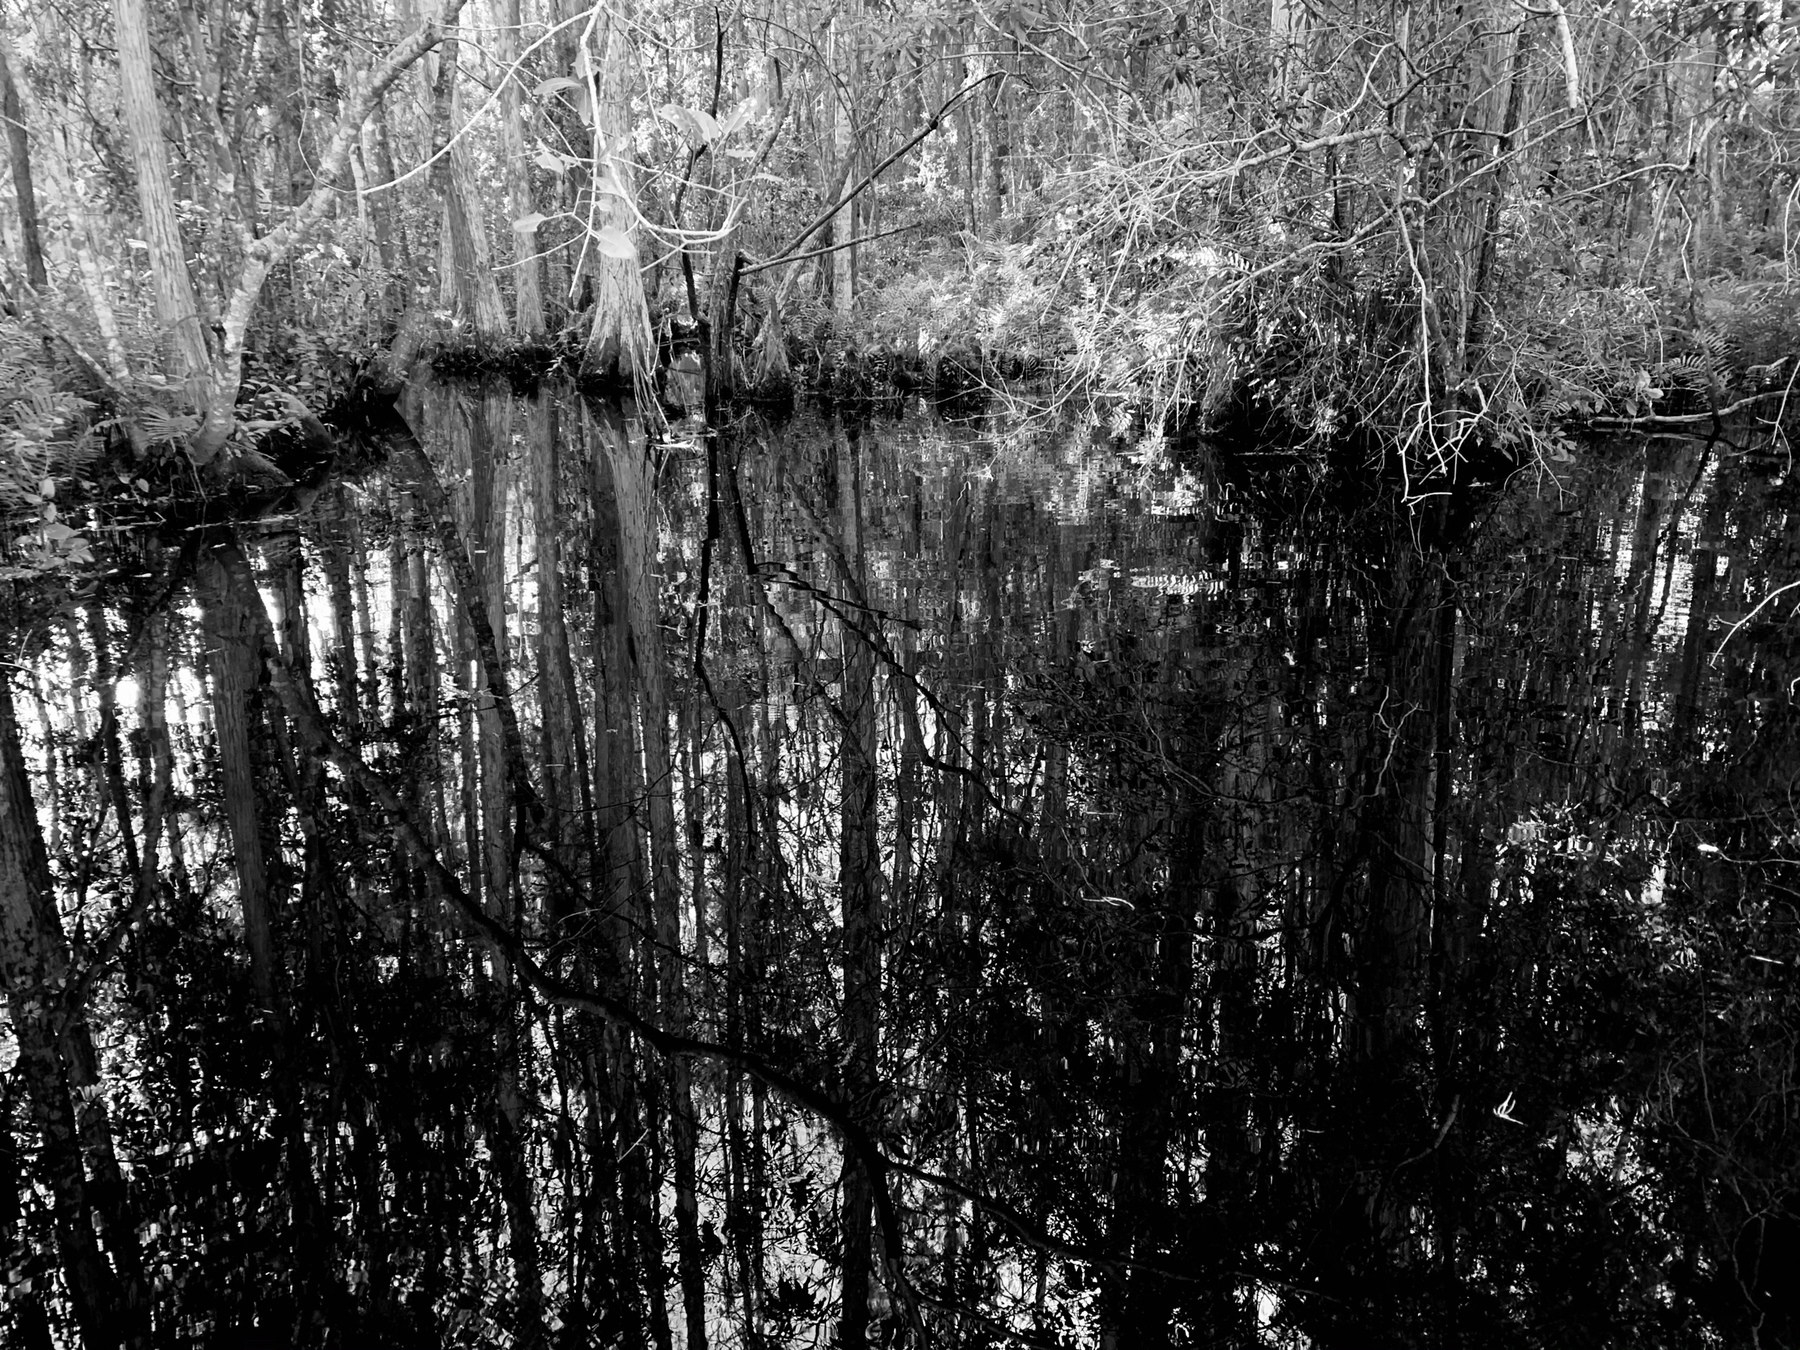 trees reflection in water